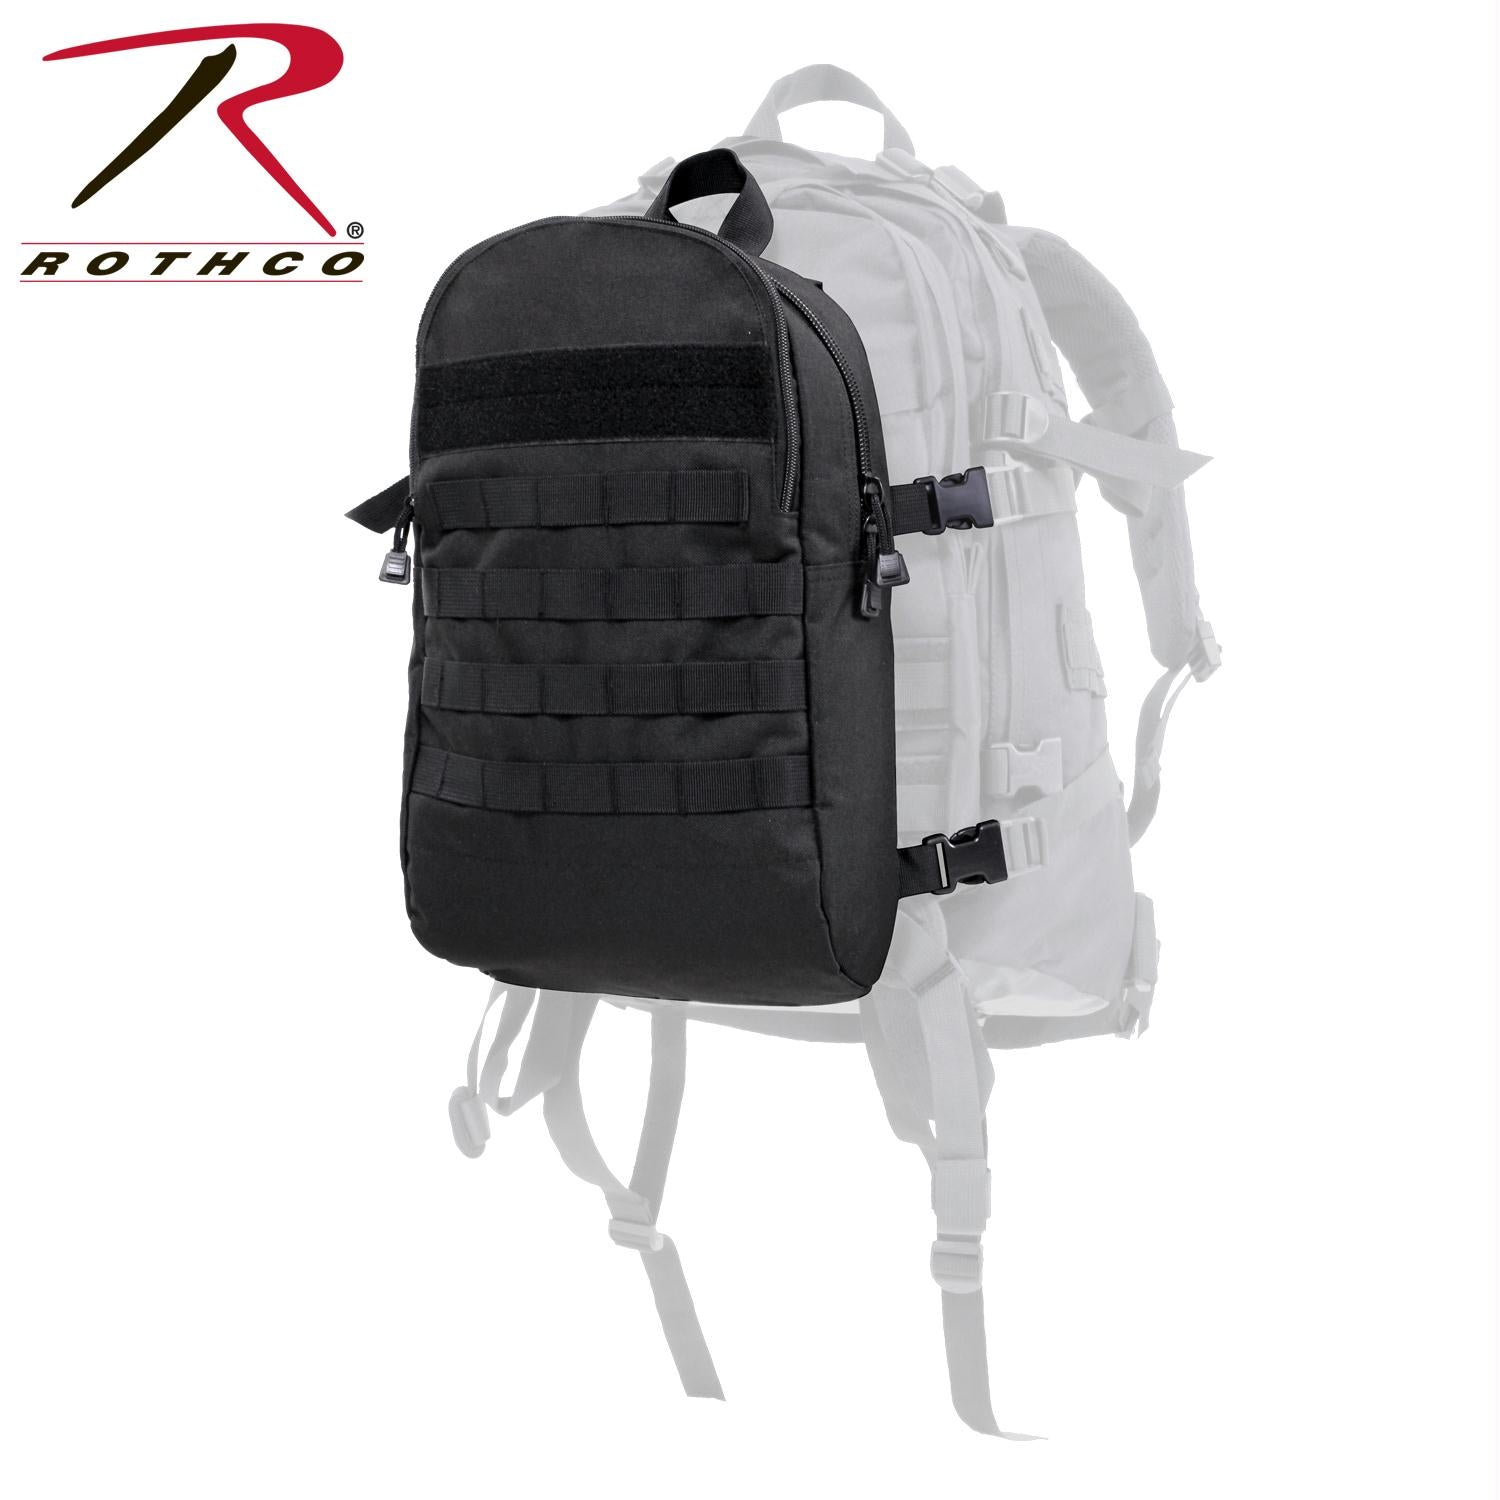 Rothco Backup Connectable Back Pack - Black